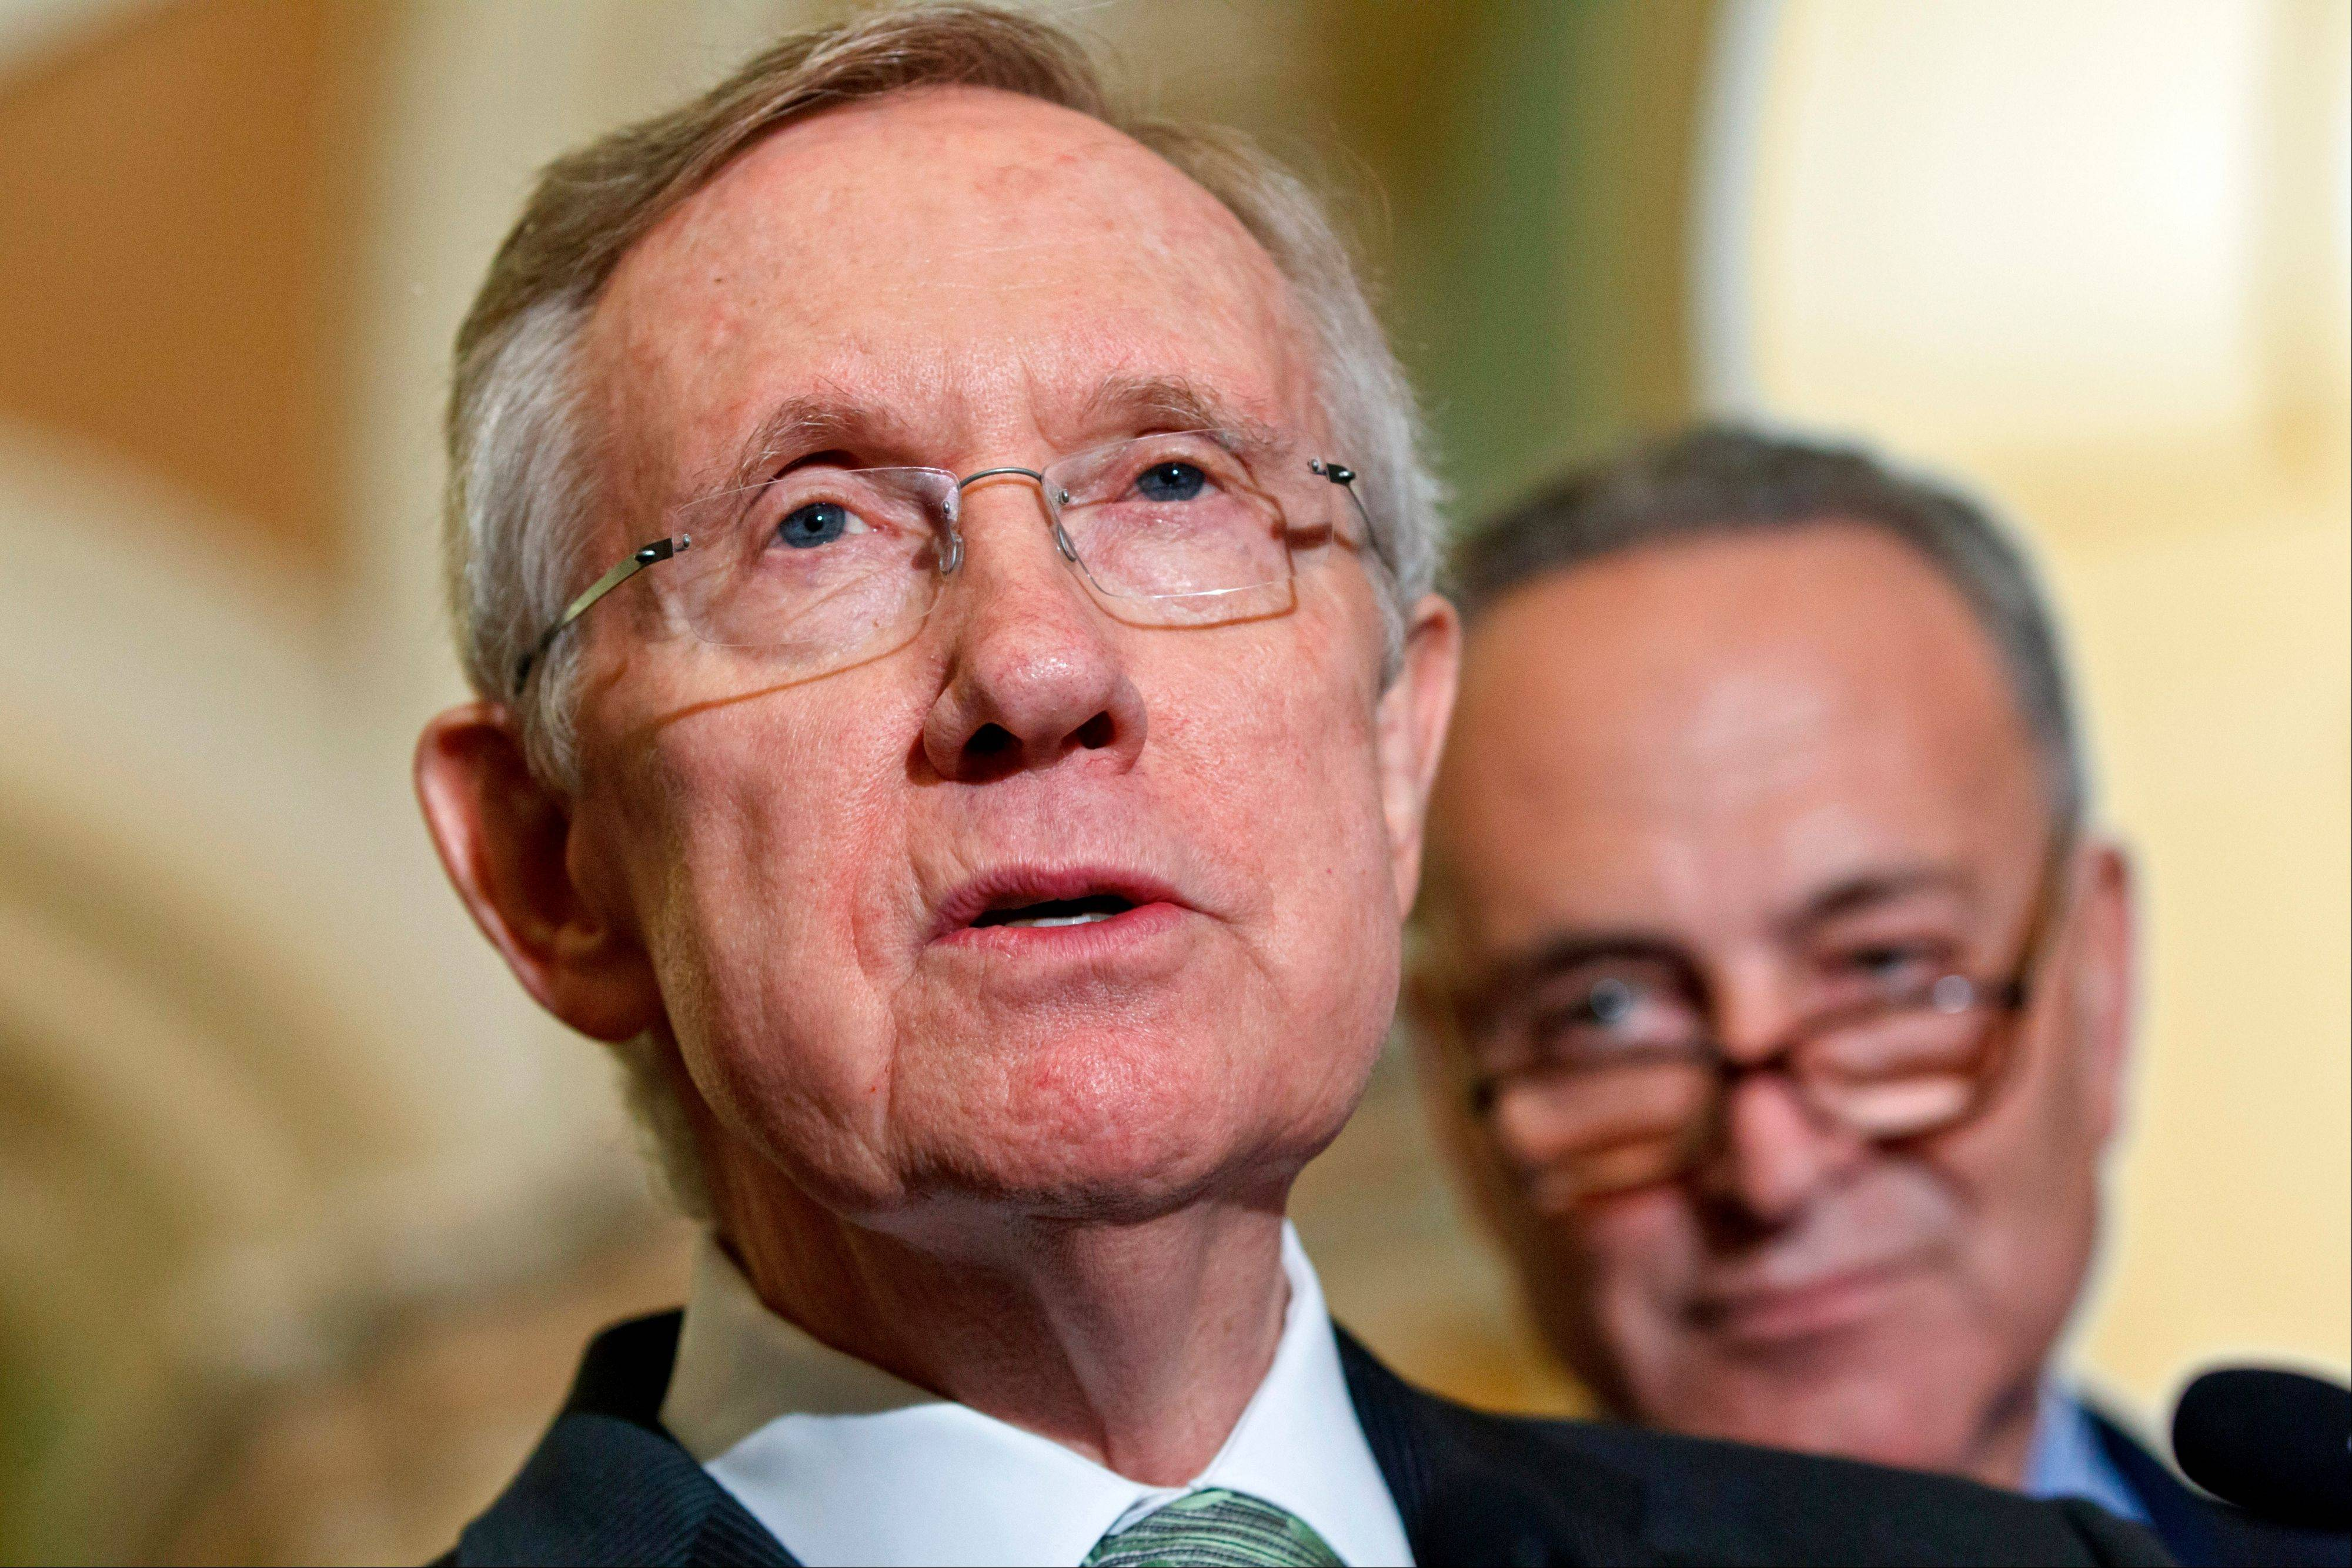 Senate Majority Leader Harry Reid said Thursday the Senate doesn�t have time to debate gun laws in the wake of the Colorado theater shootings last week.